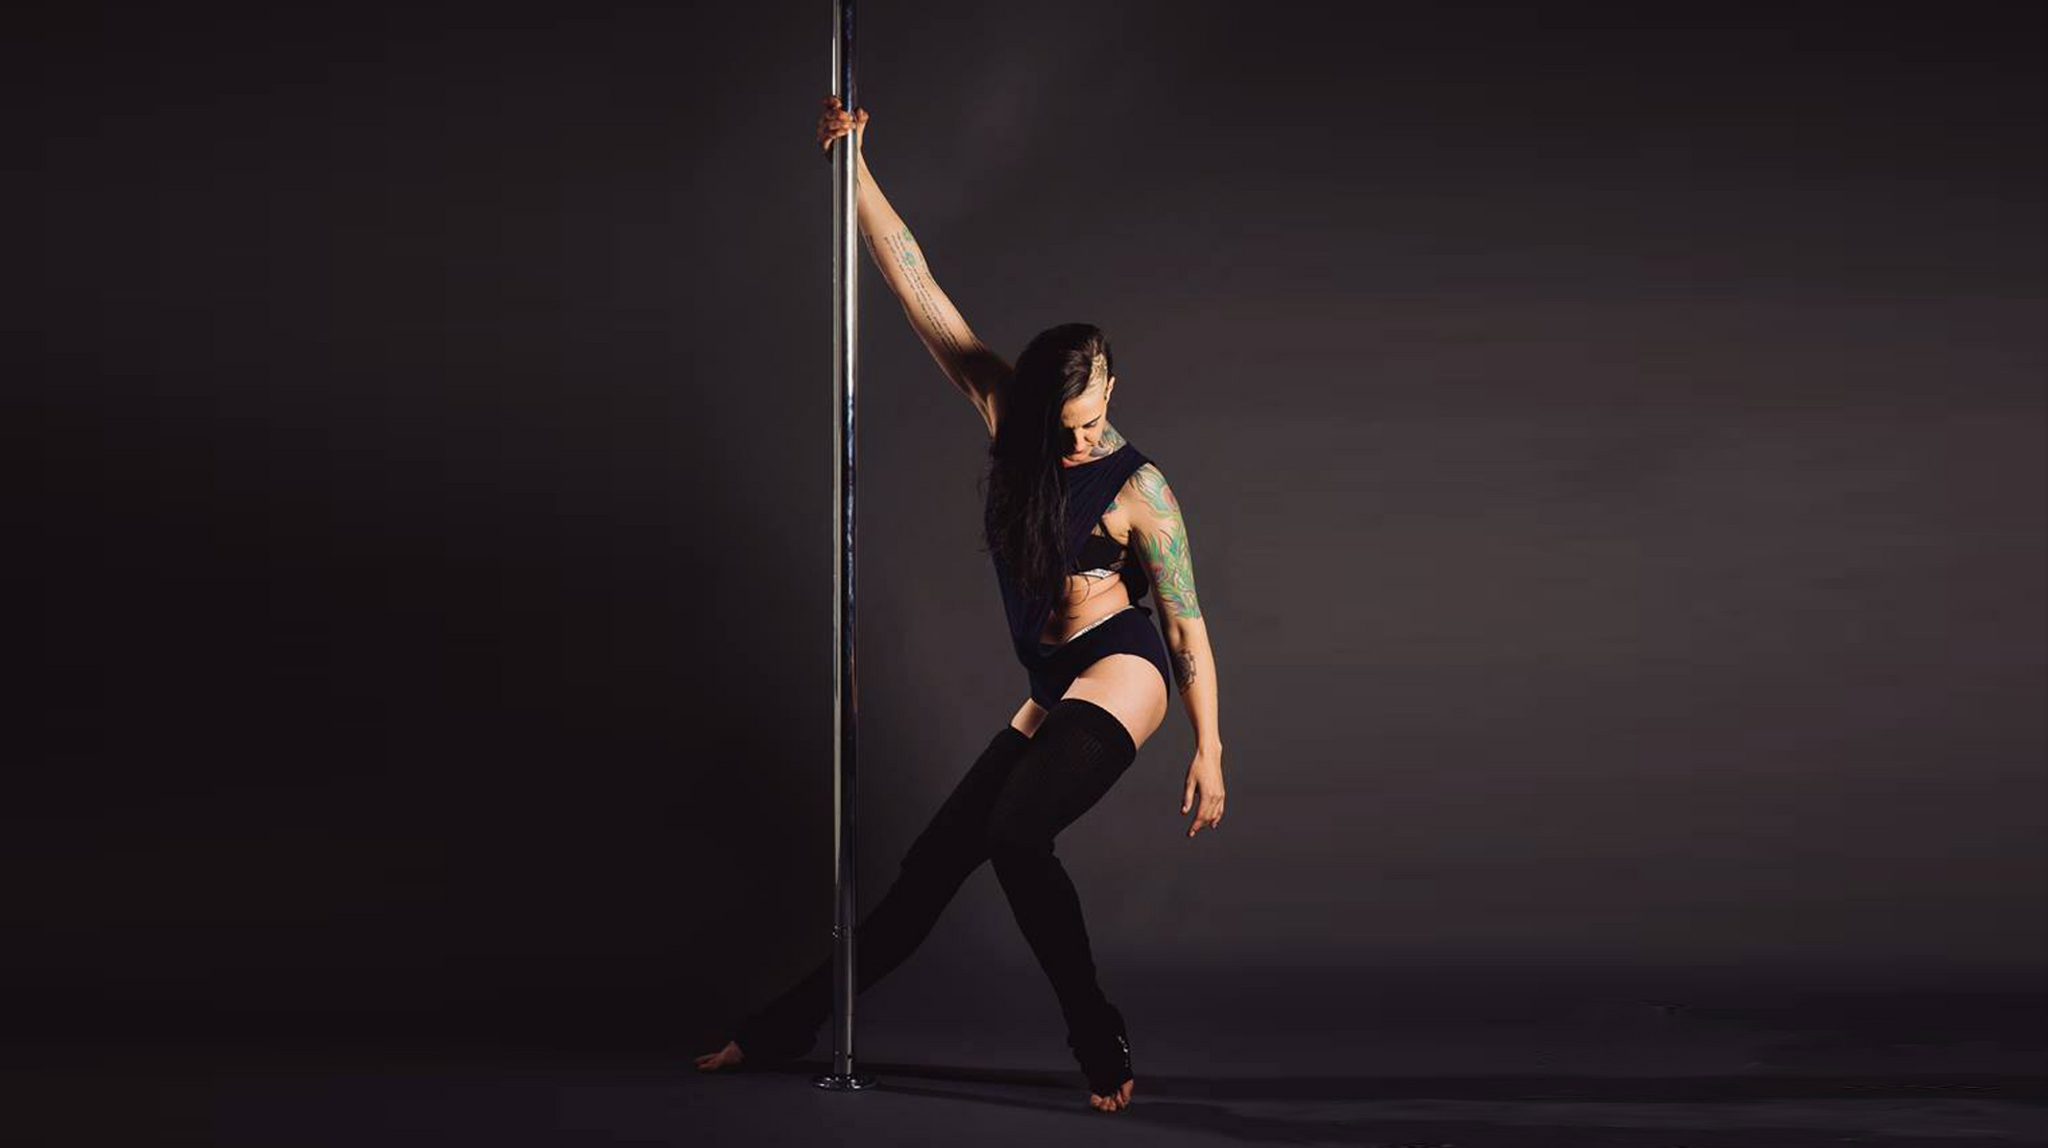 Lucy Cropper Pole